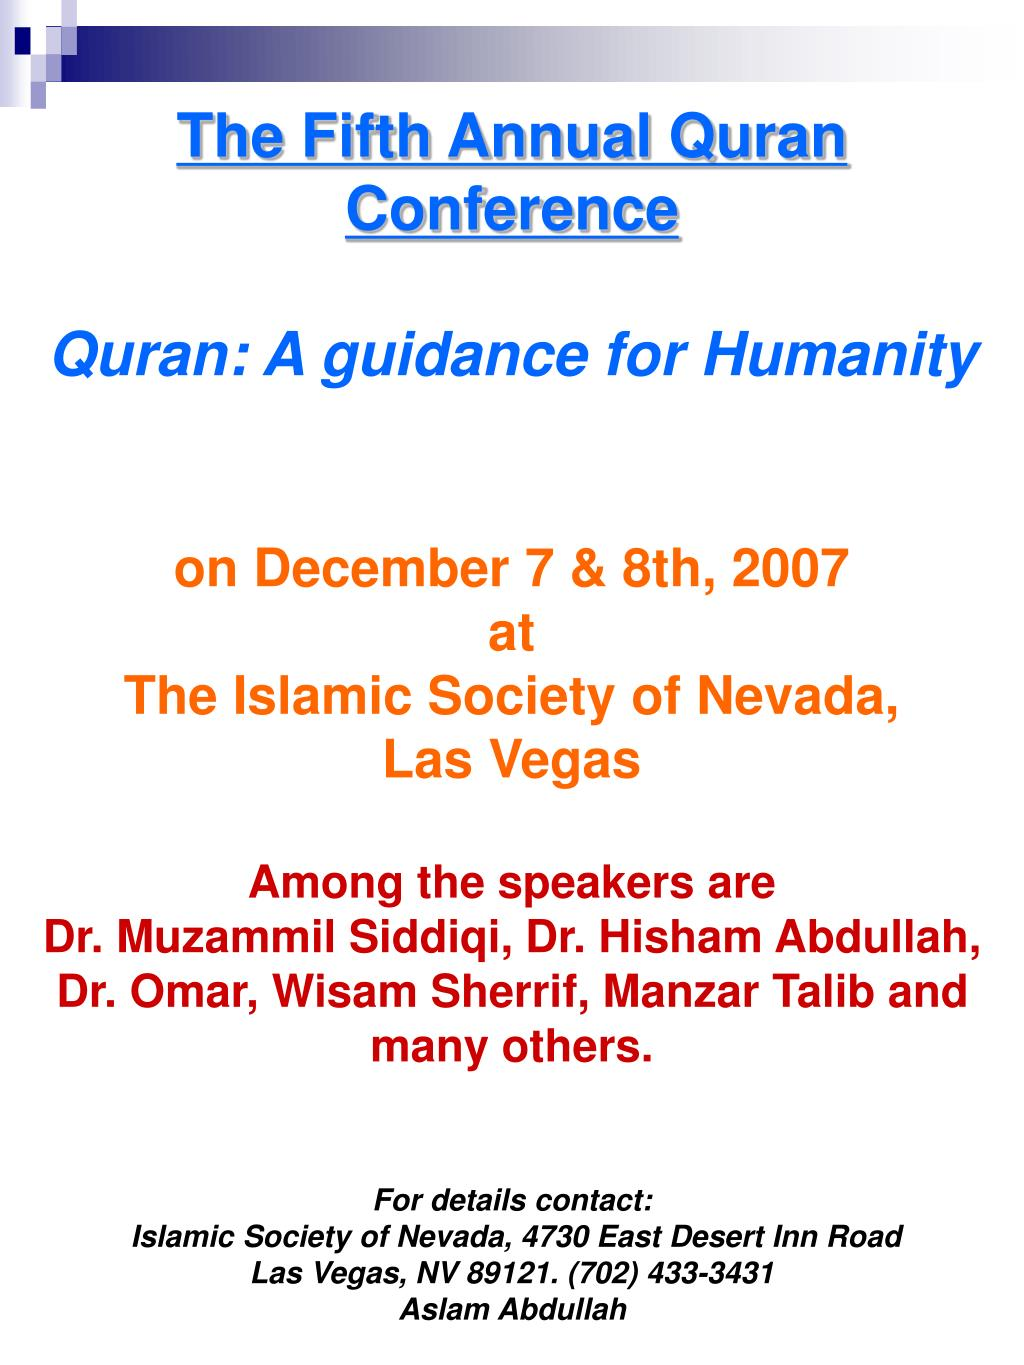 The Fifth Annual Quran Conference